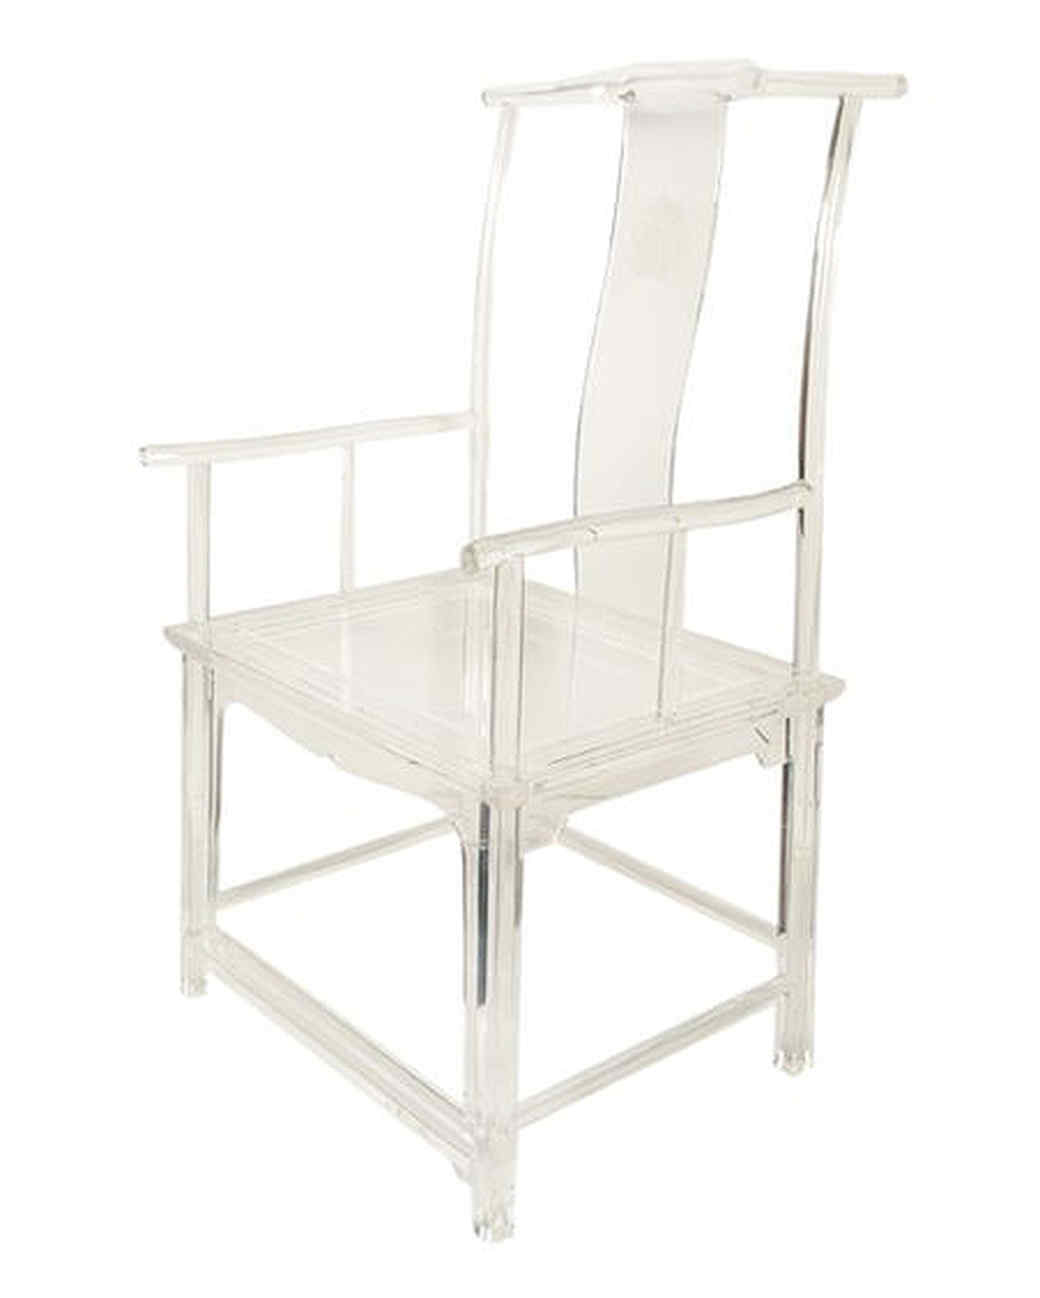 perspex hanging chair little tikes garden lucite furniture is back 15 cool pieces in the clear